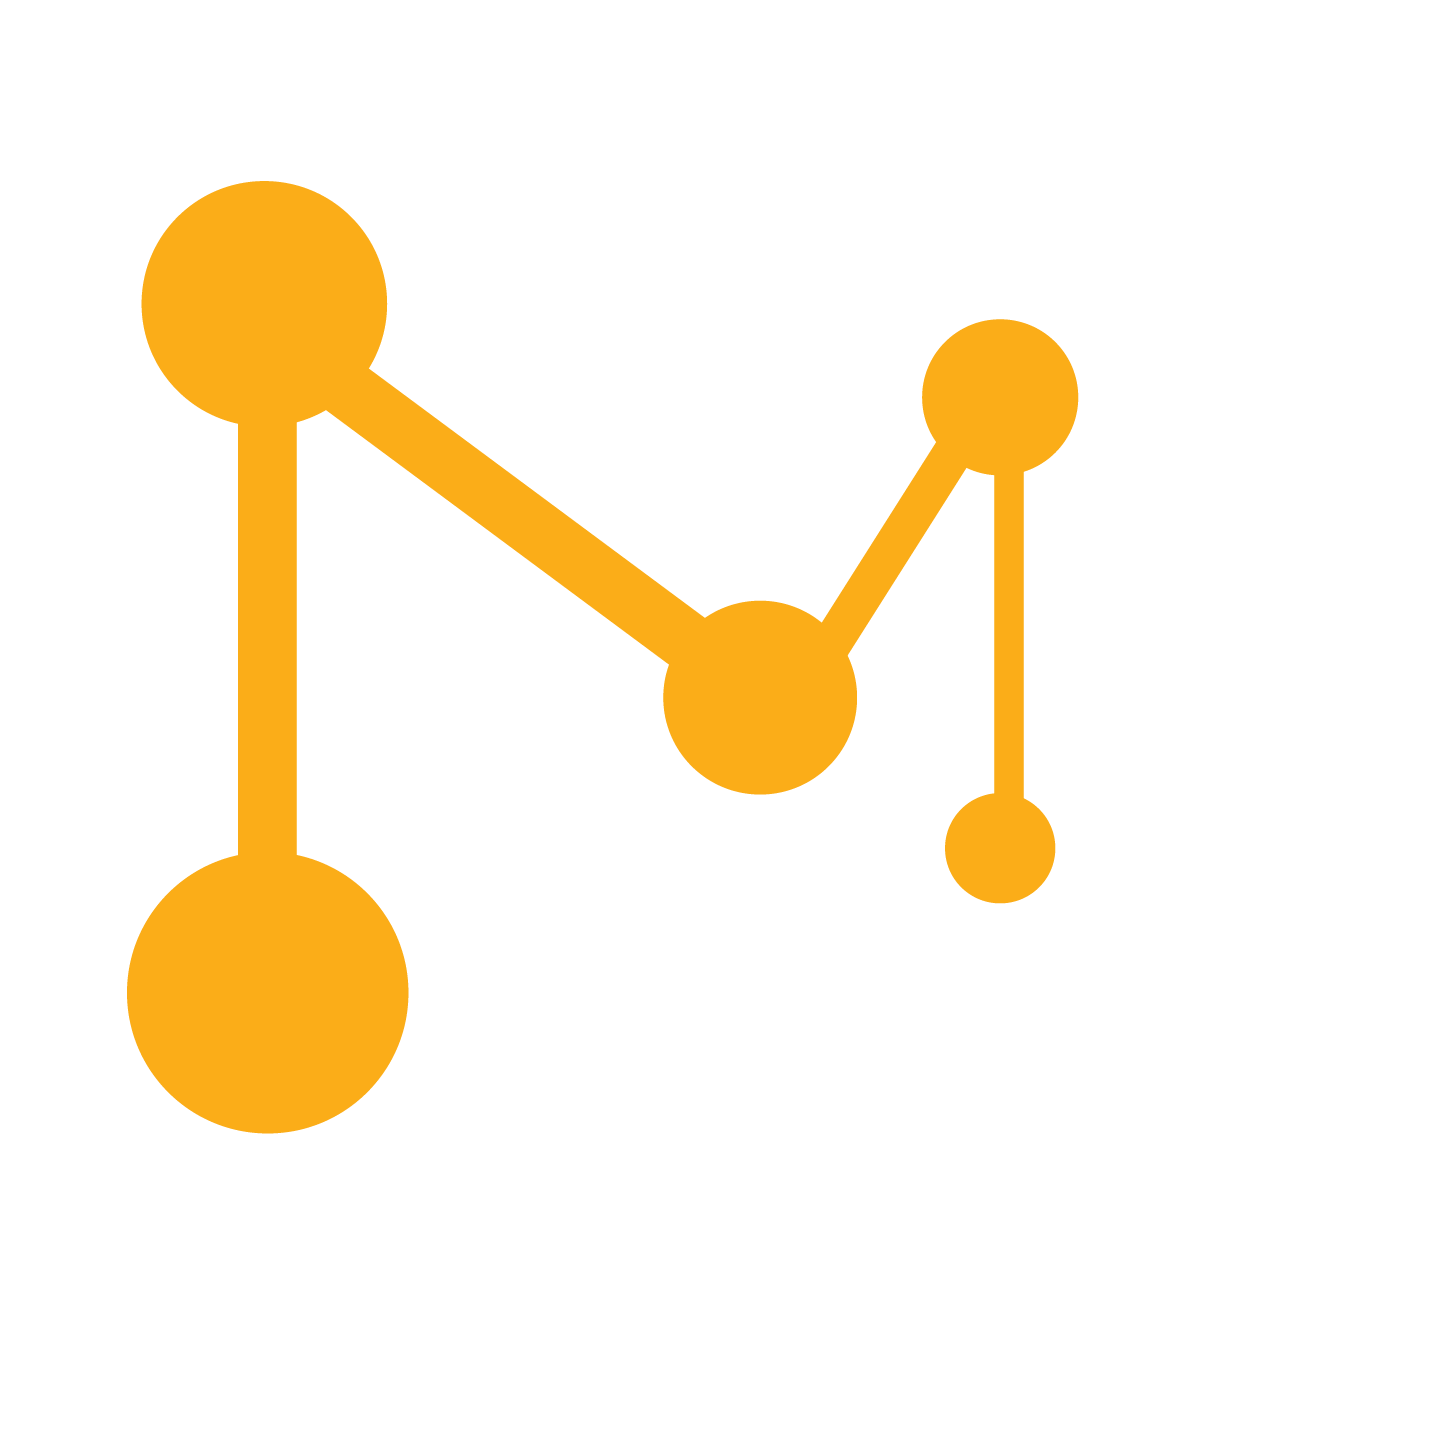 MSc(CS) Logo